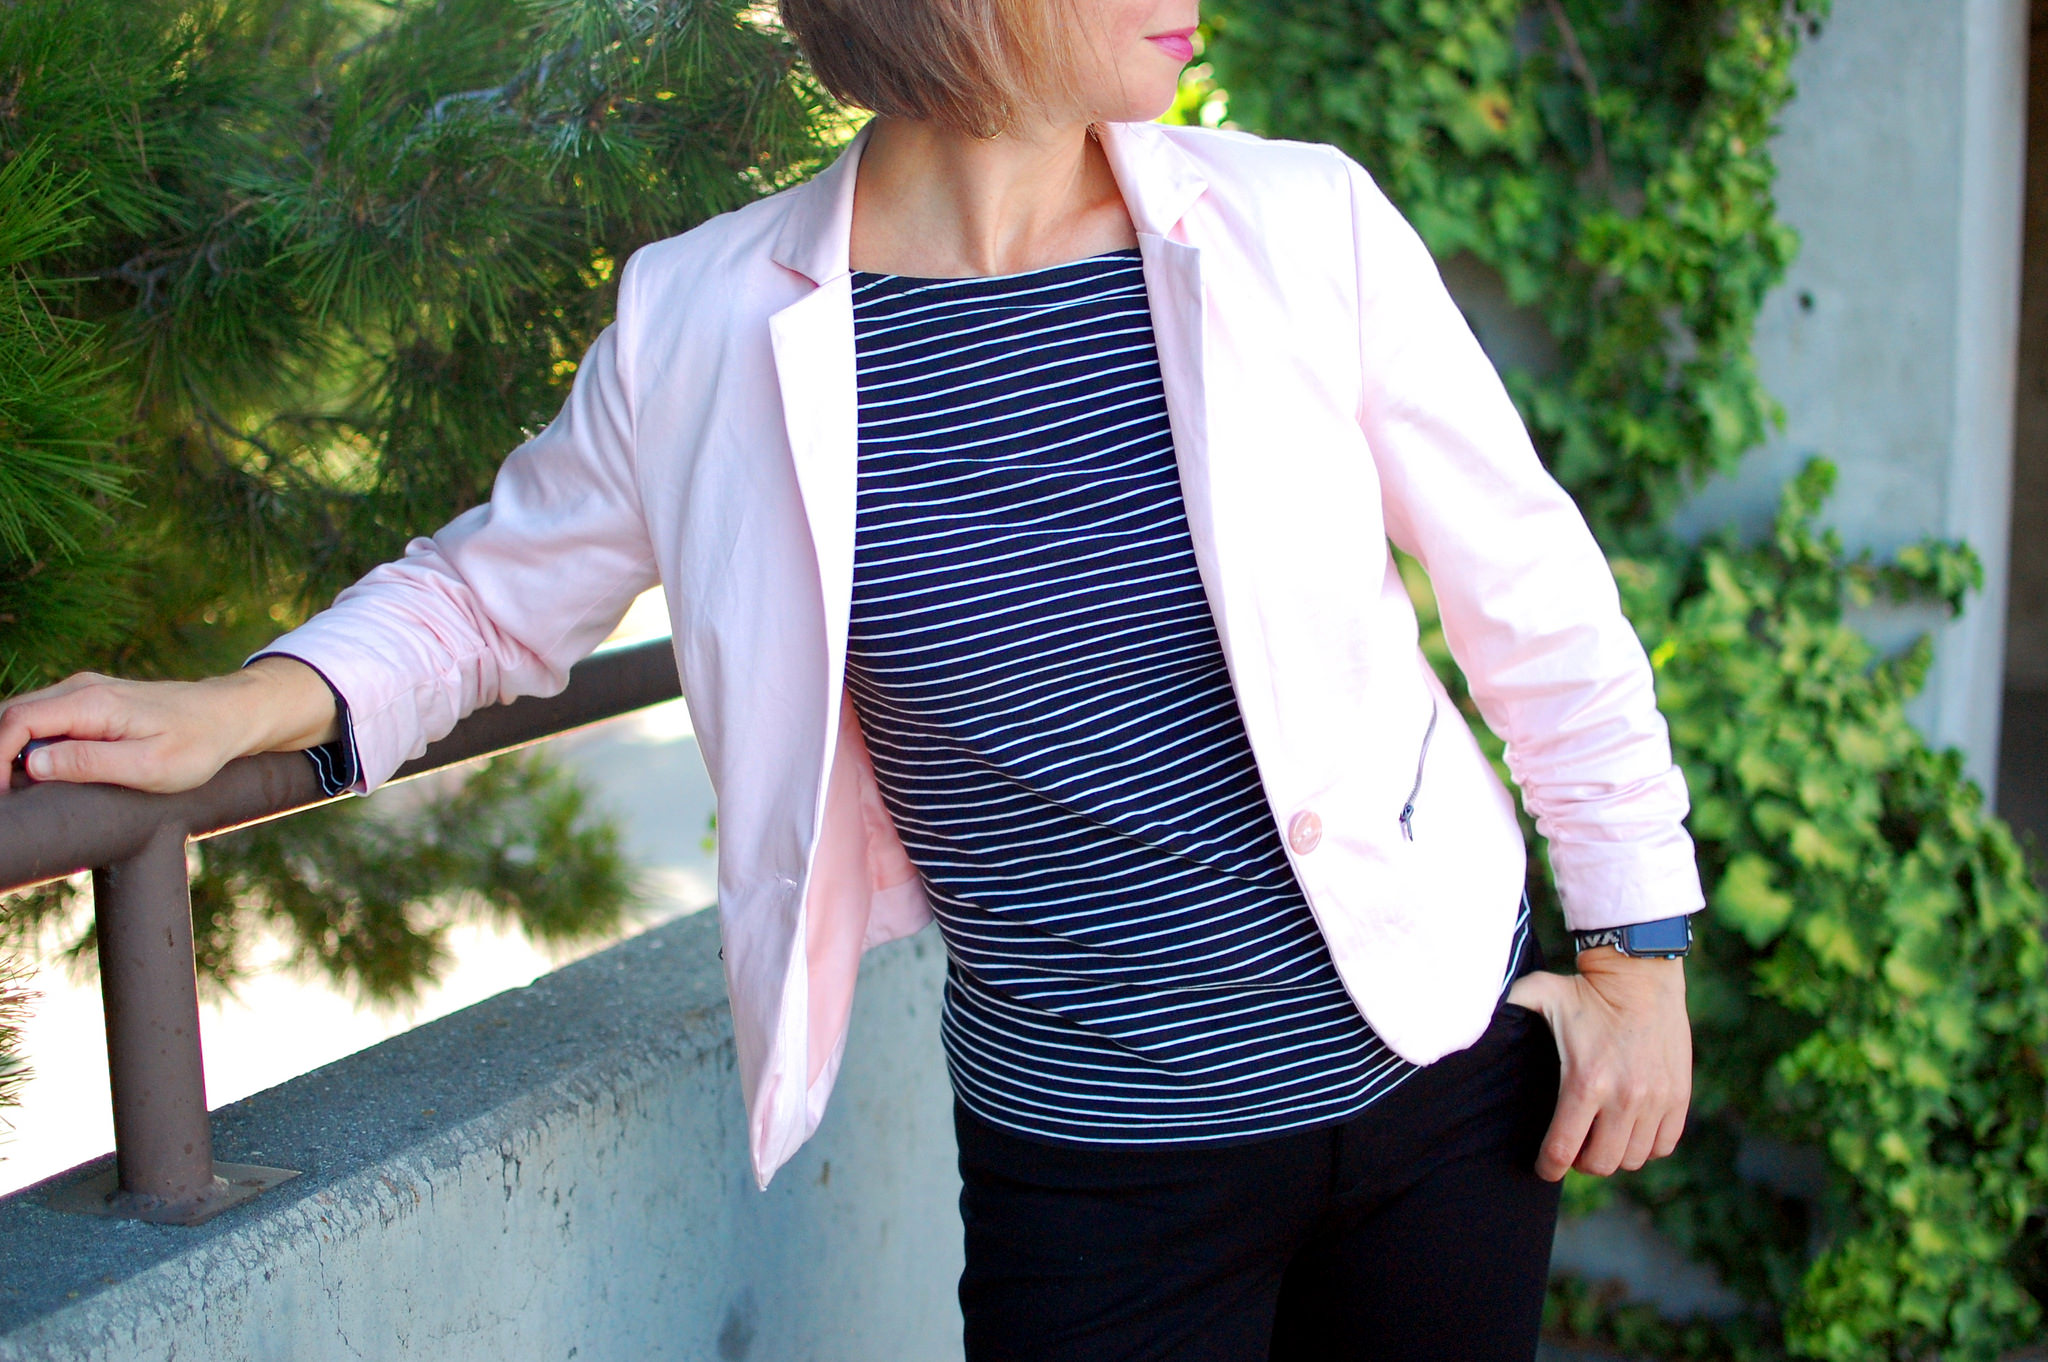 millenial blush pink blazer black white stripes daily outfit blog ootd whatiwore2day